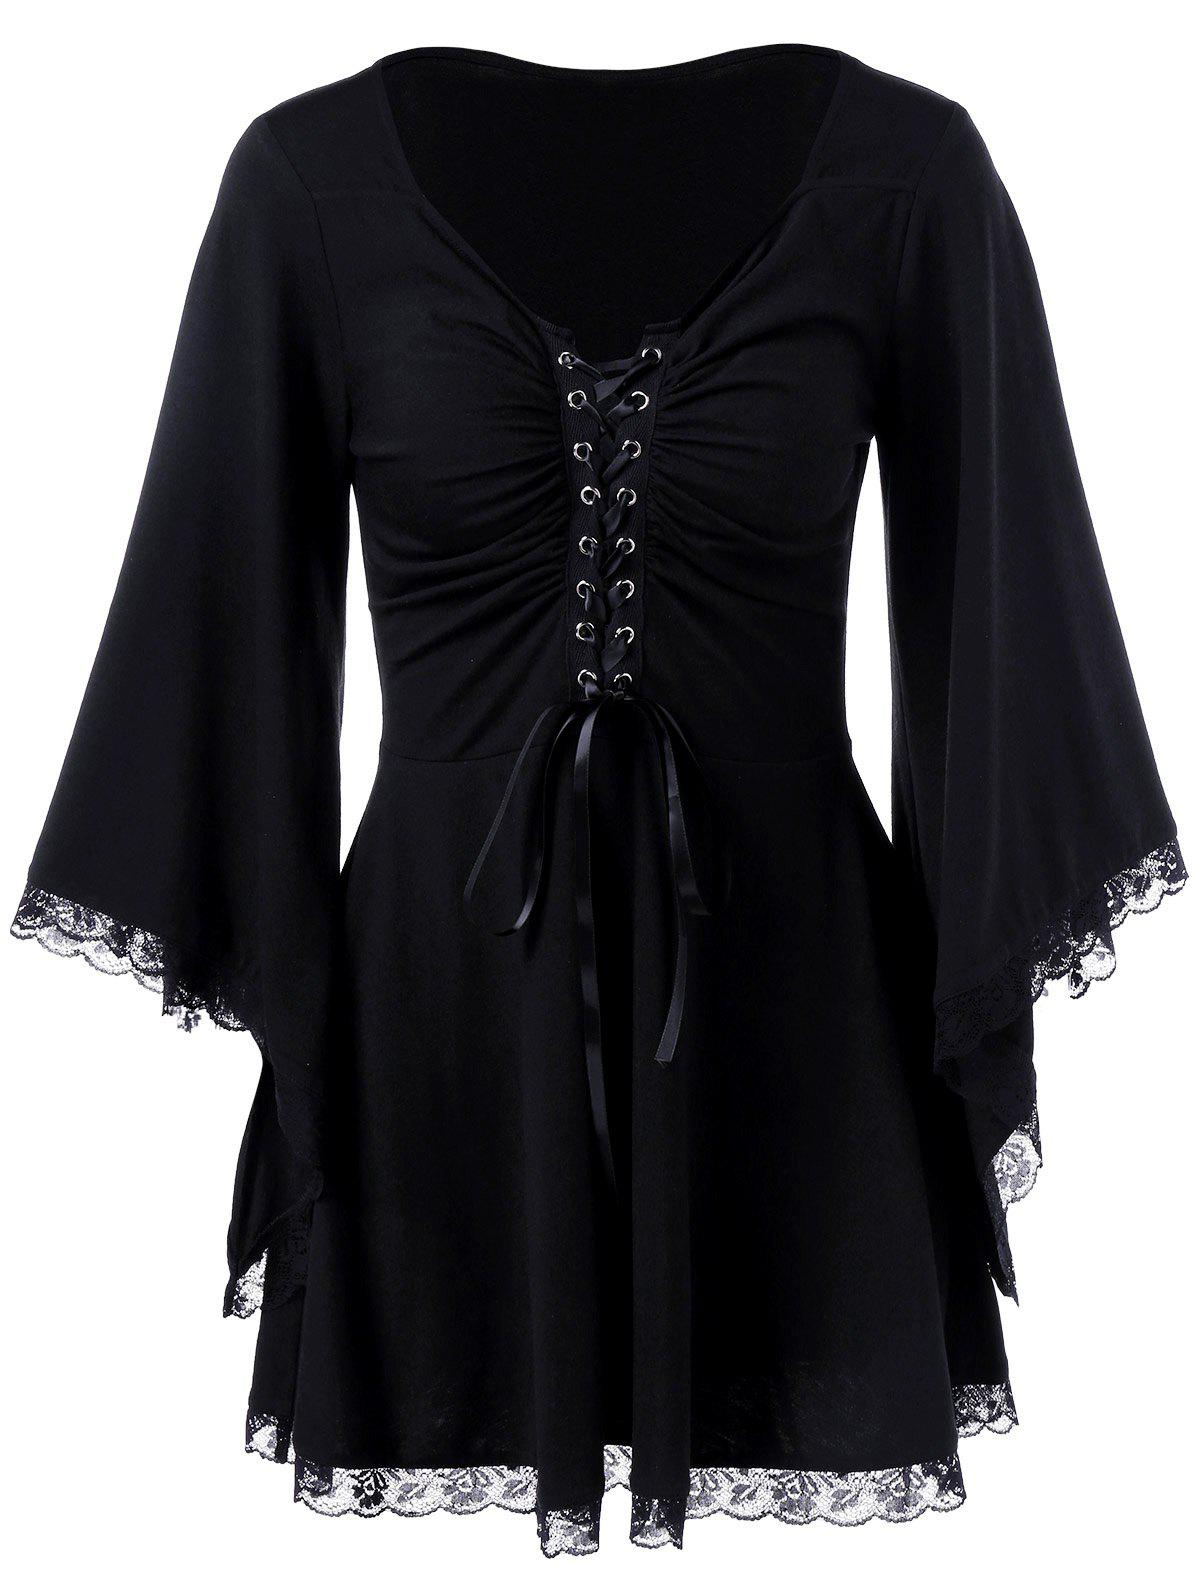 Black t shirt with lace - Bell Sleeve Lace Up T Shirt Black 2xl